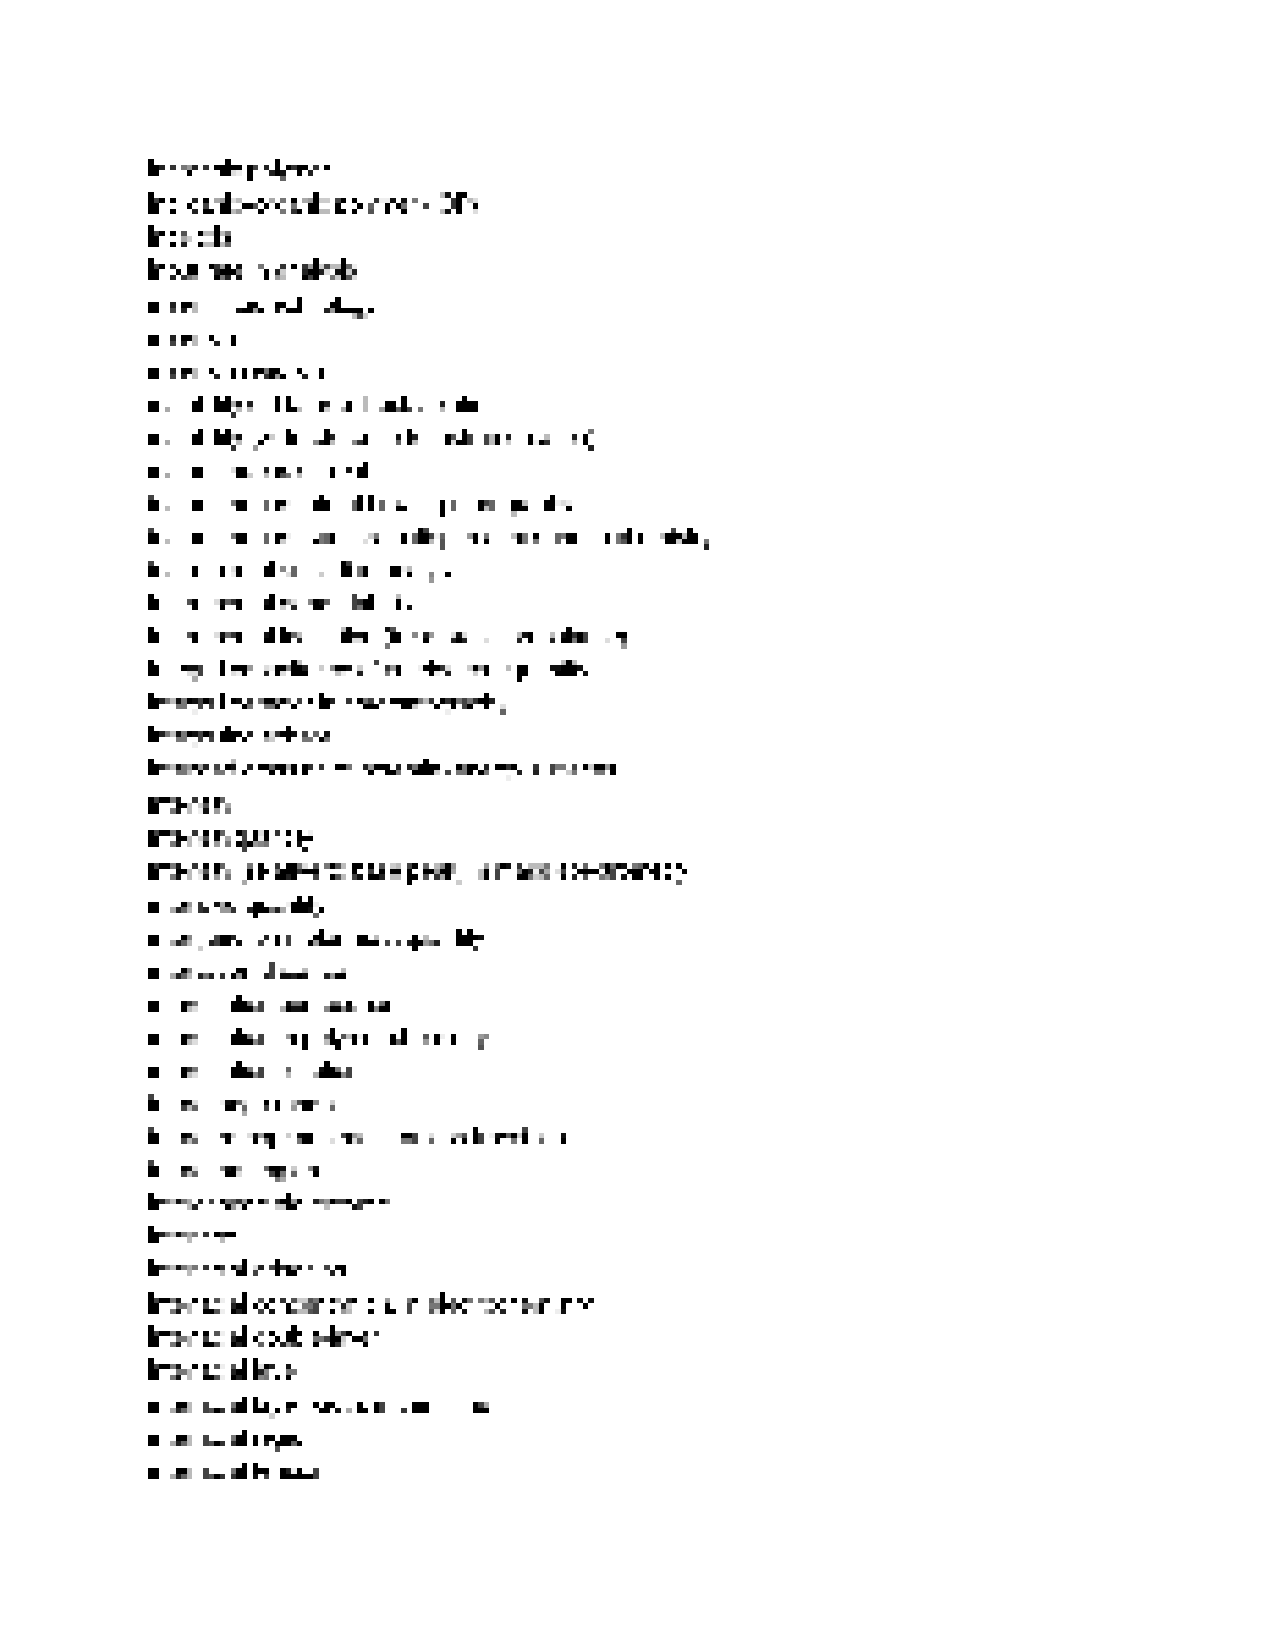 list of chemistry terms used in The term chemical weapon is applied to any toxic chemical or its precursor that can cause death, injury, temporary incapacitation or sensory irritation through its chemical action munitions or other delivery devices designed to deliver chemical weapons, whether filled or unfilled, are also considered weapons themselves.